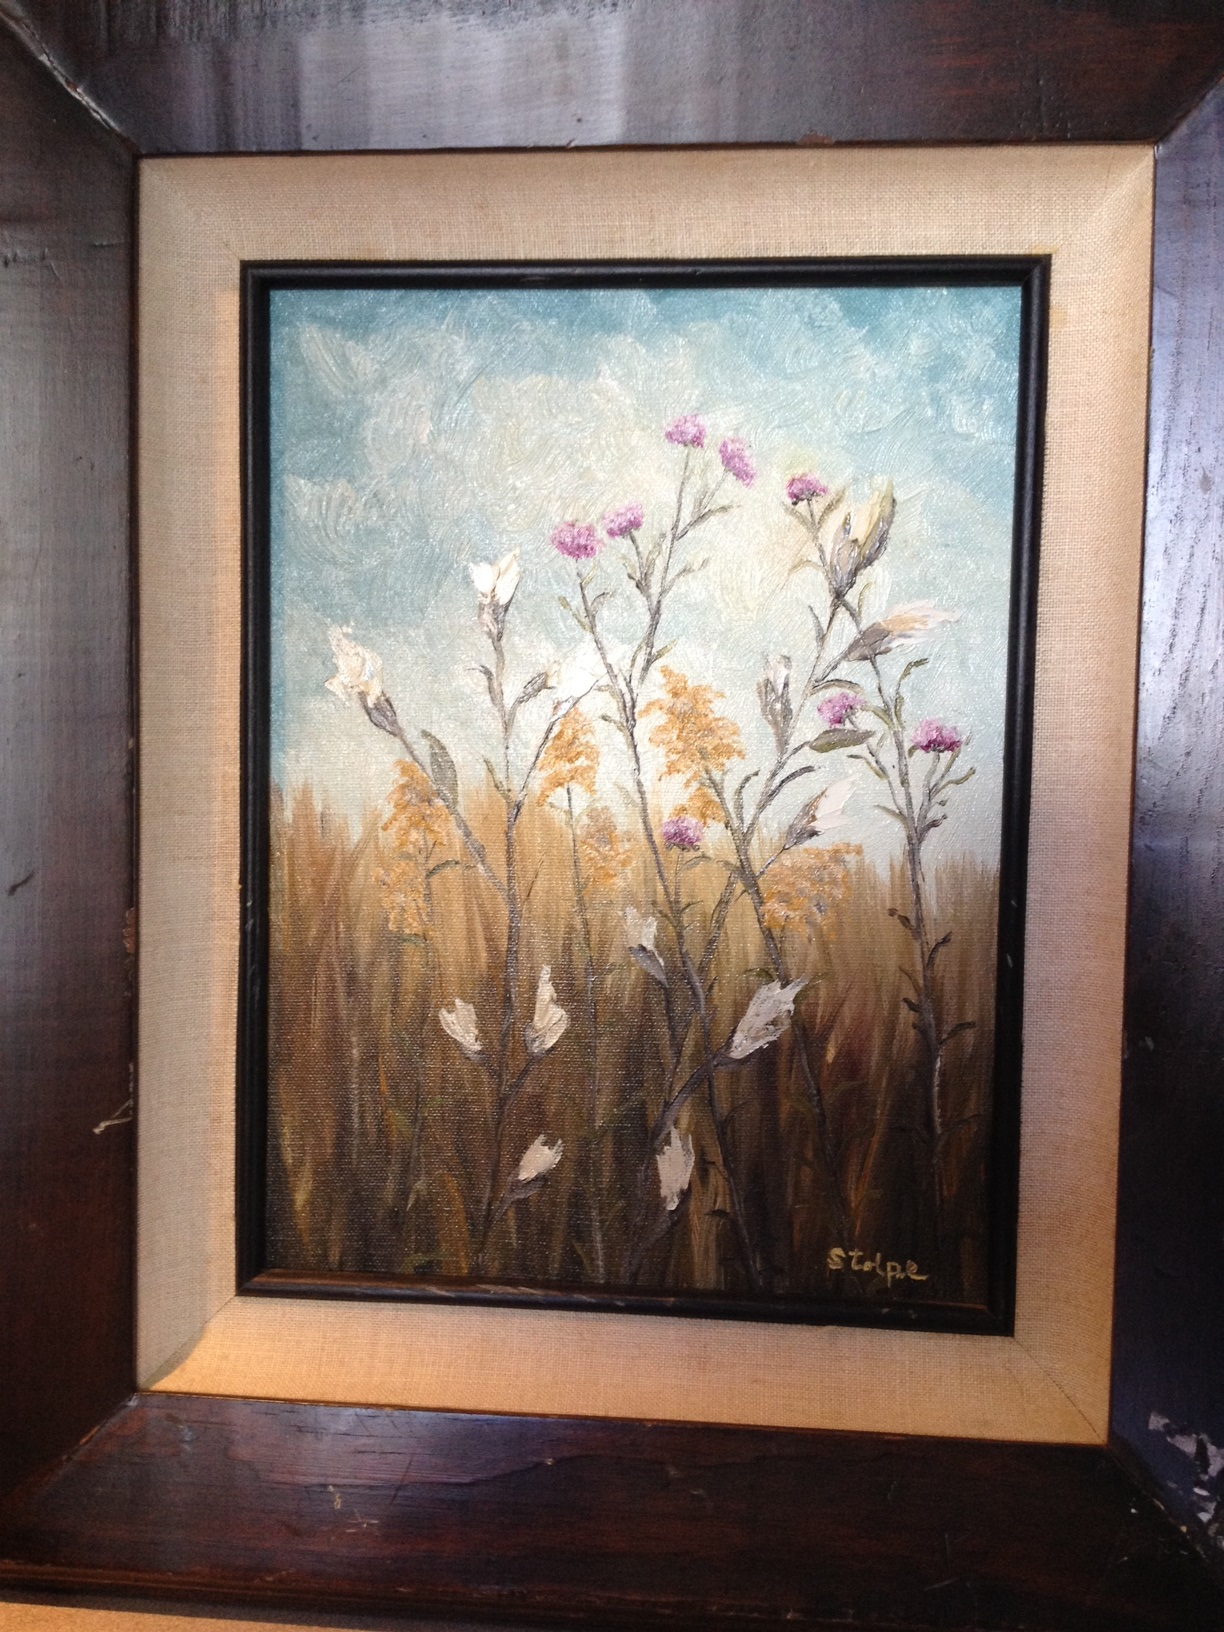 Trying to find out artist name for a small oil painting